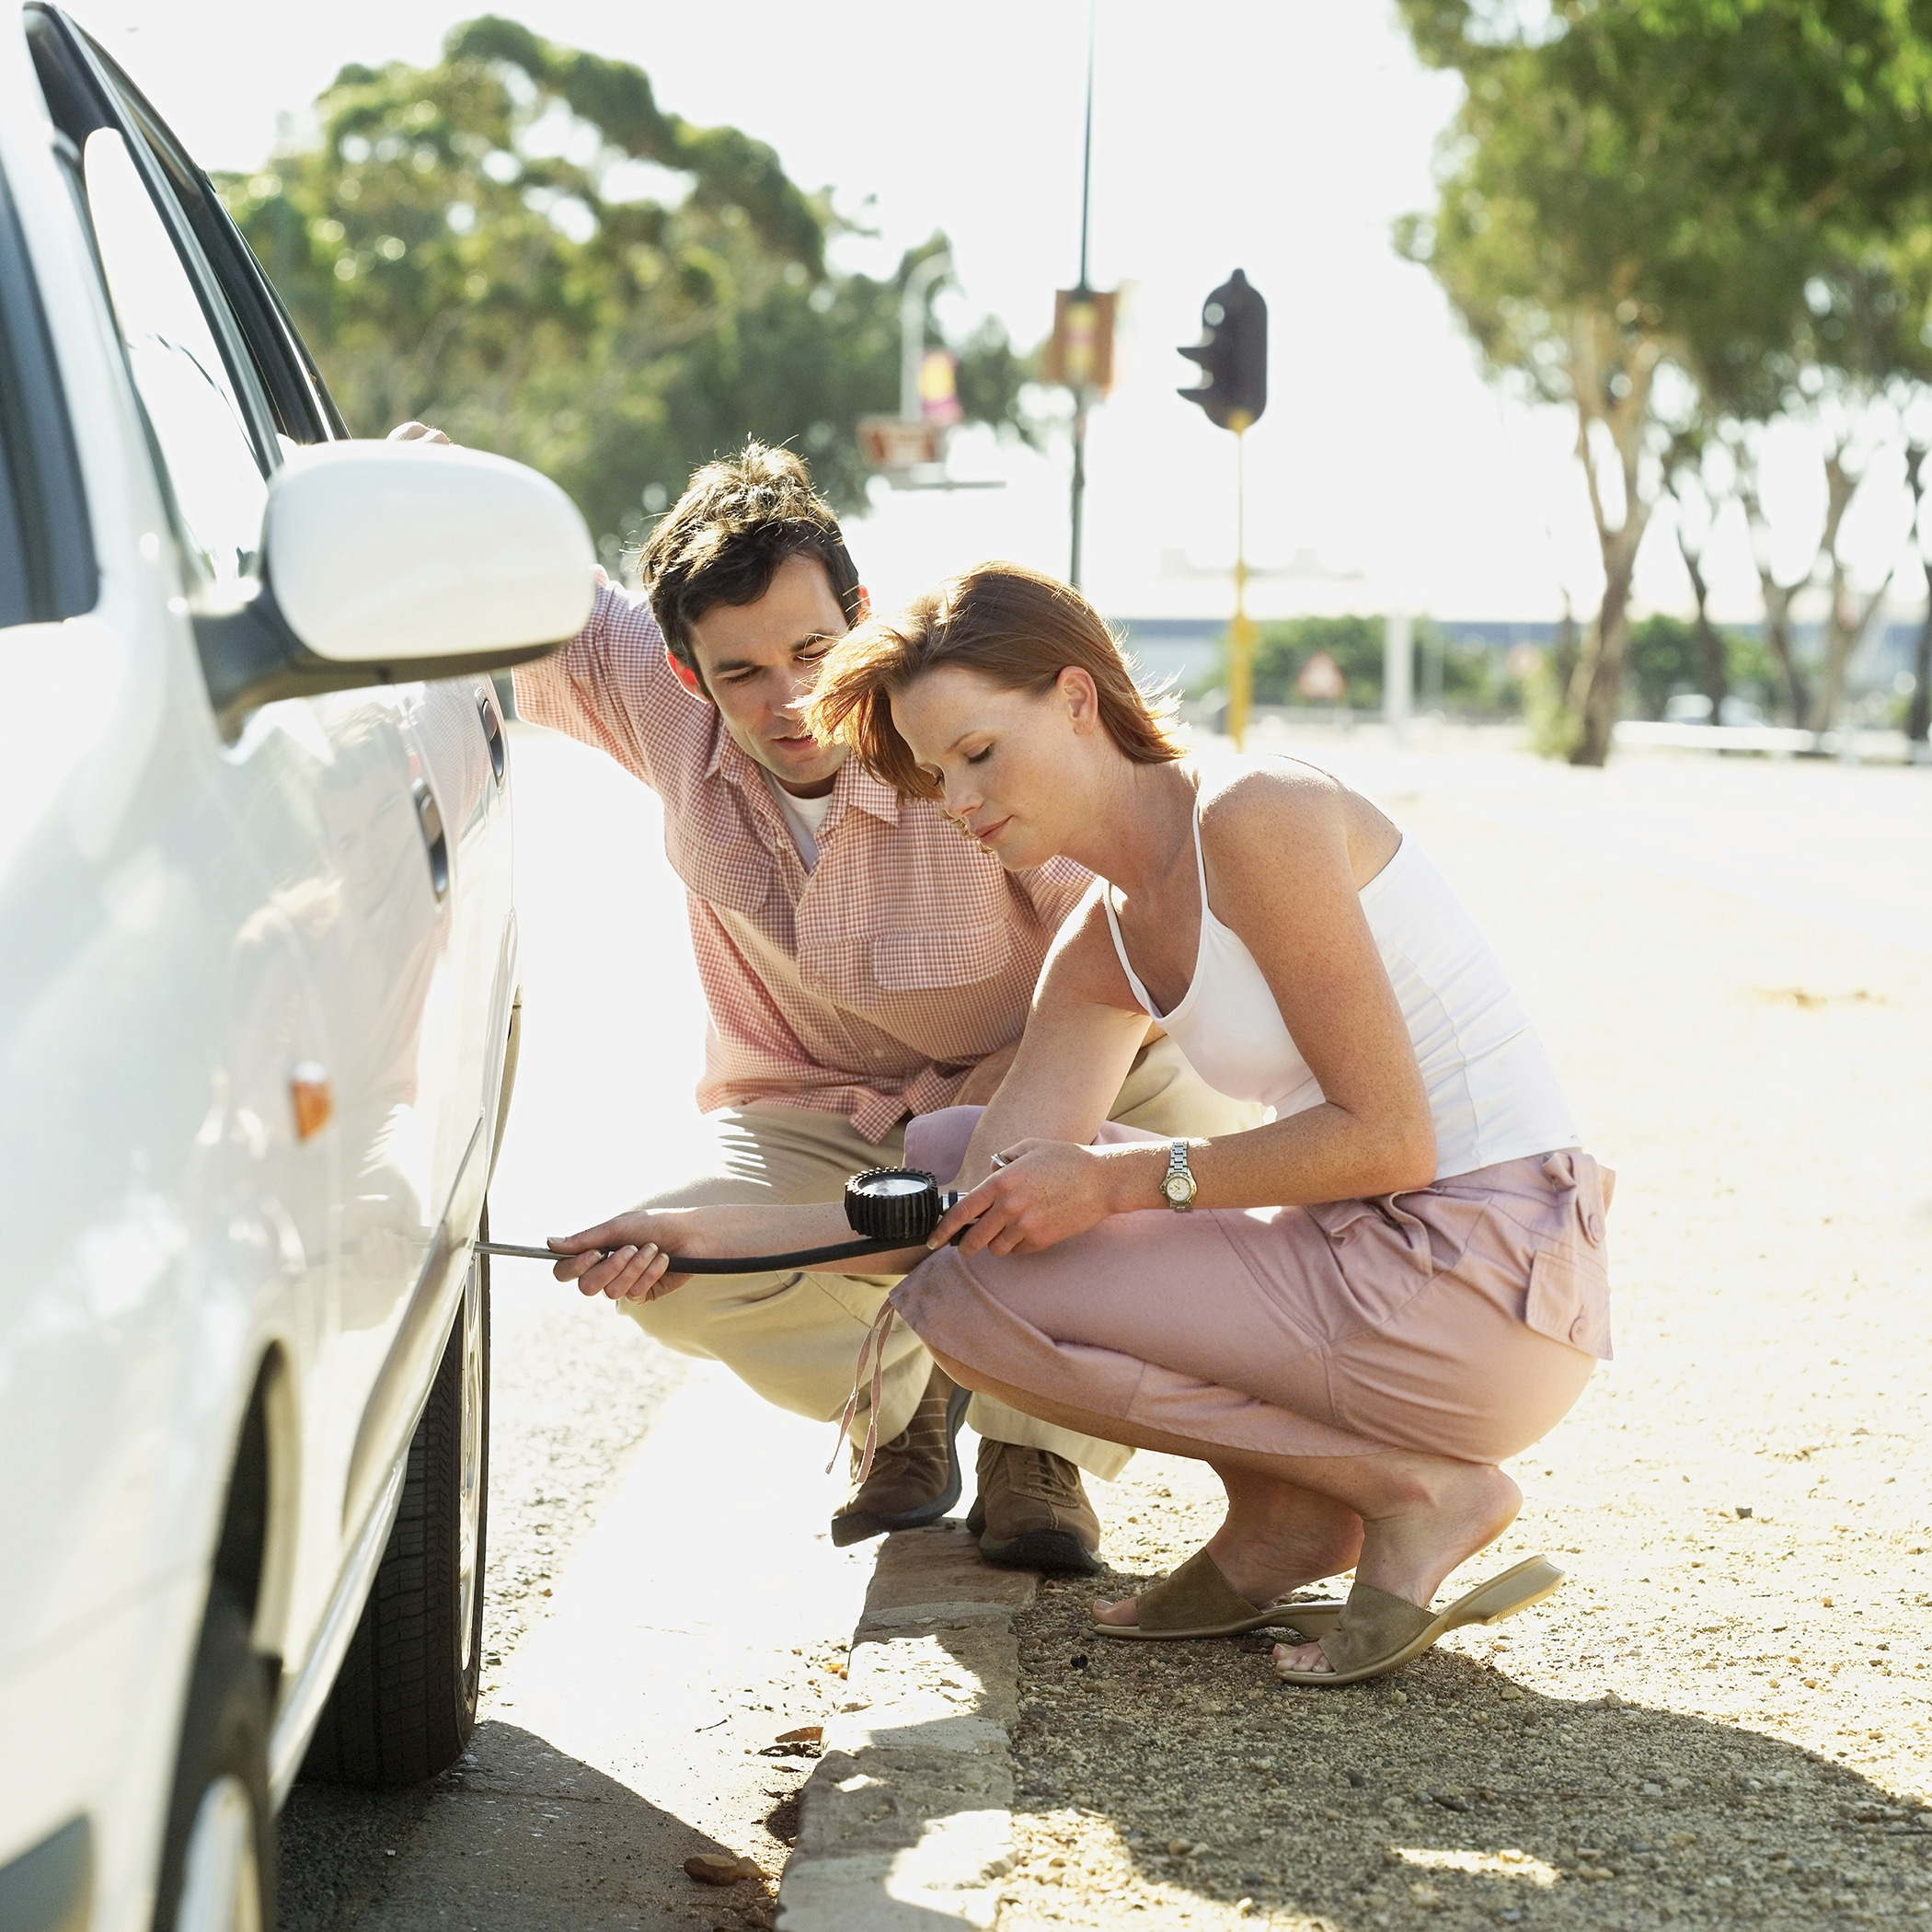 Tips for planning a road trip